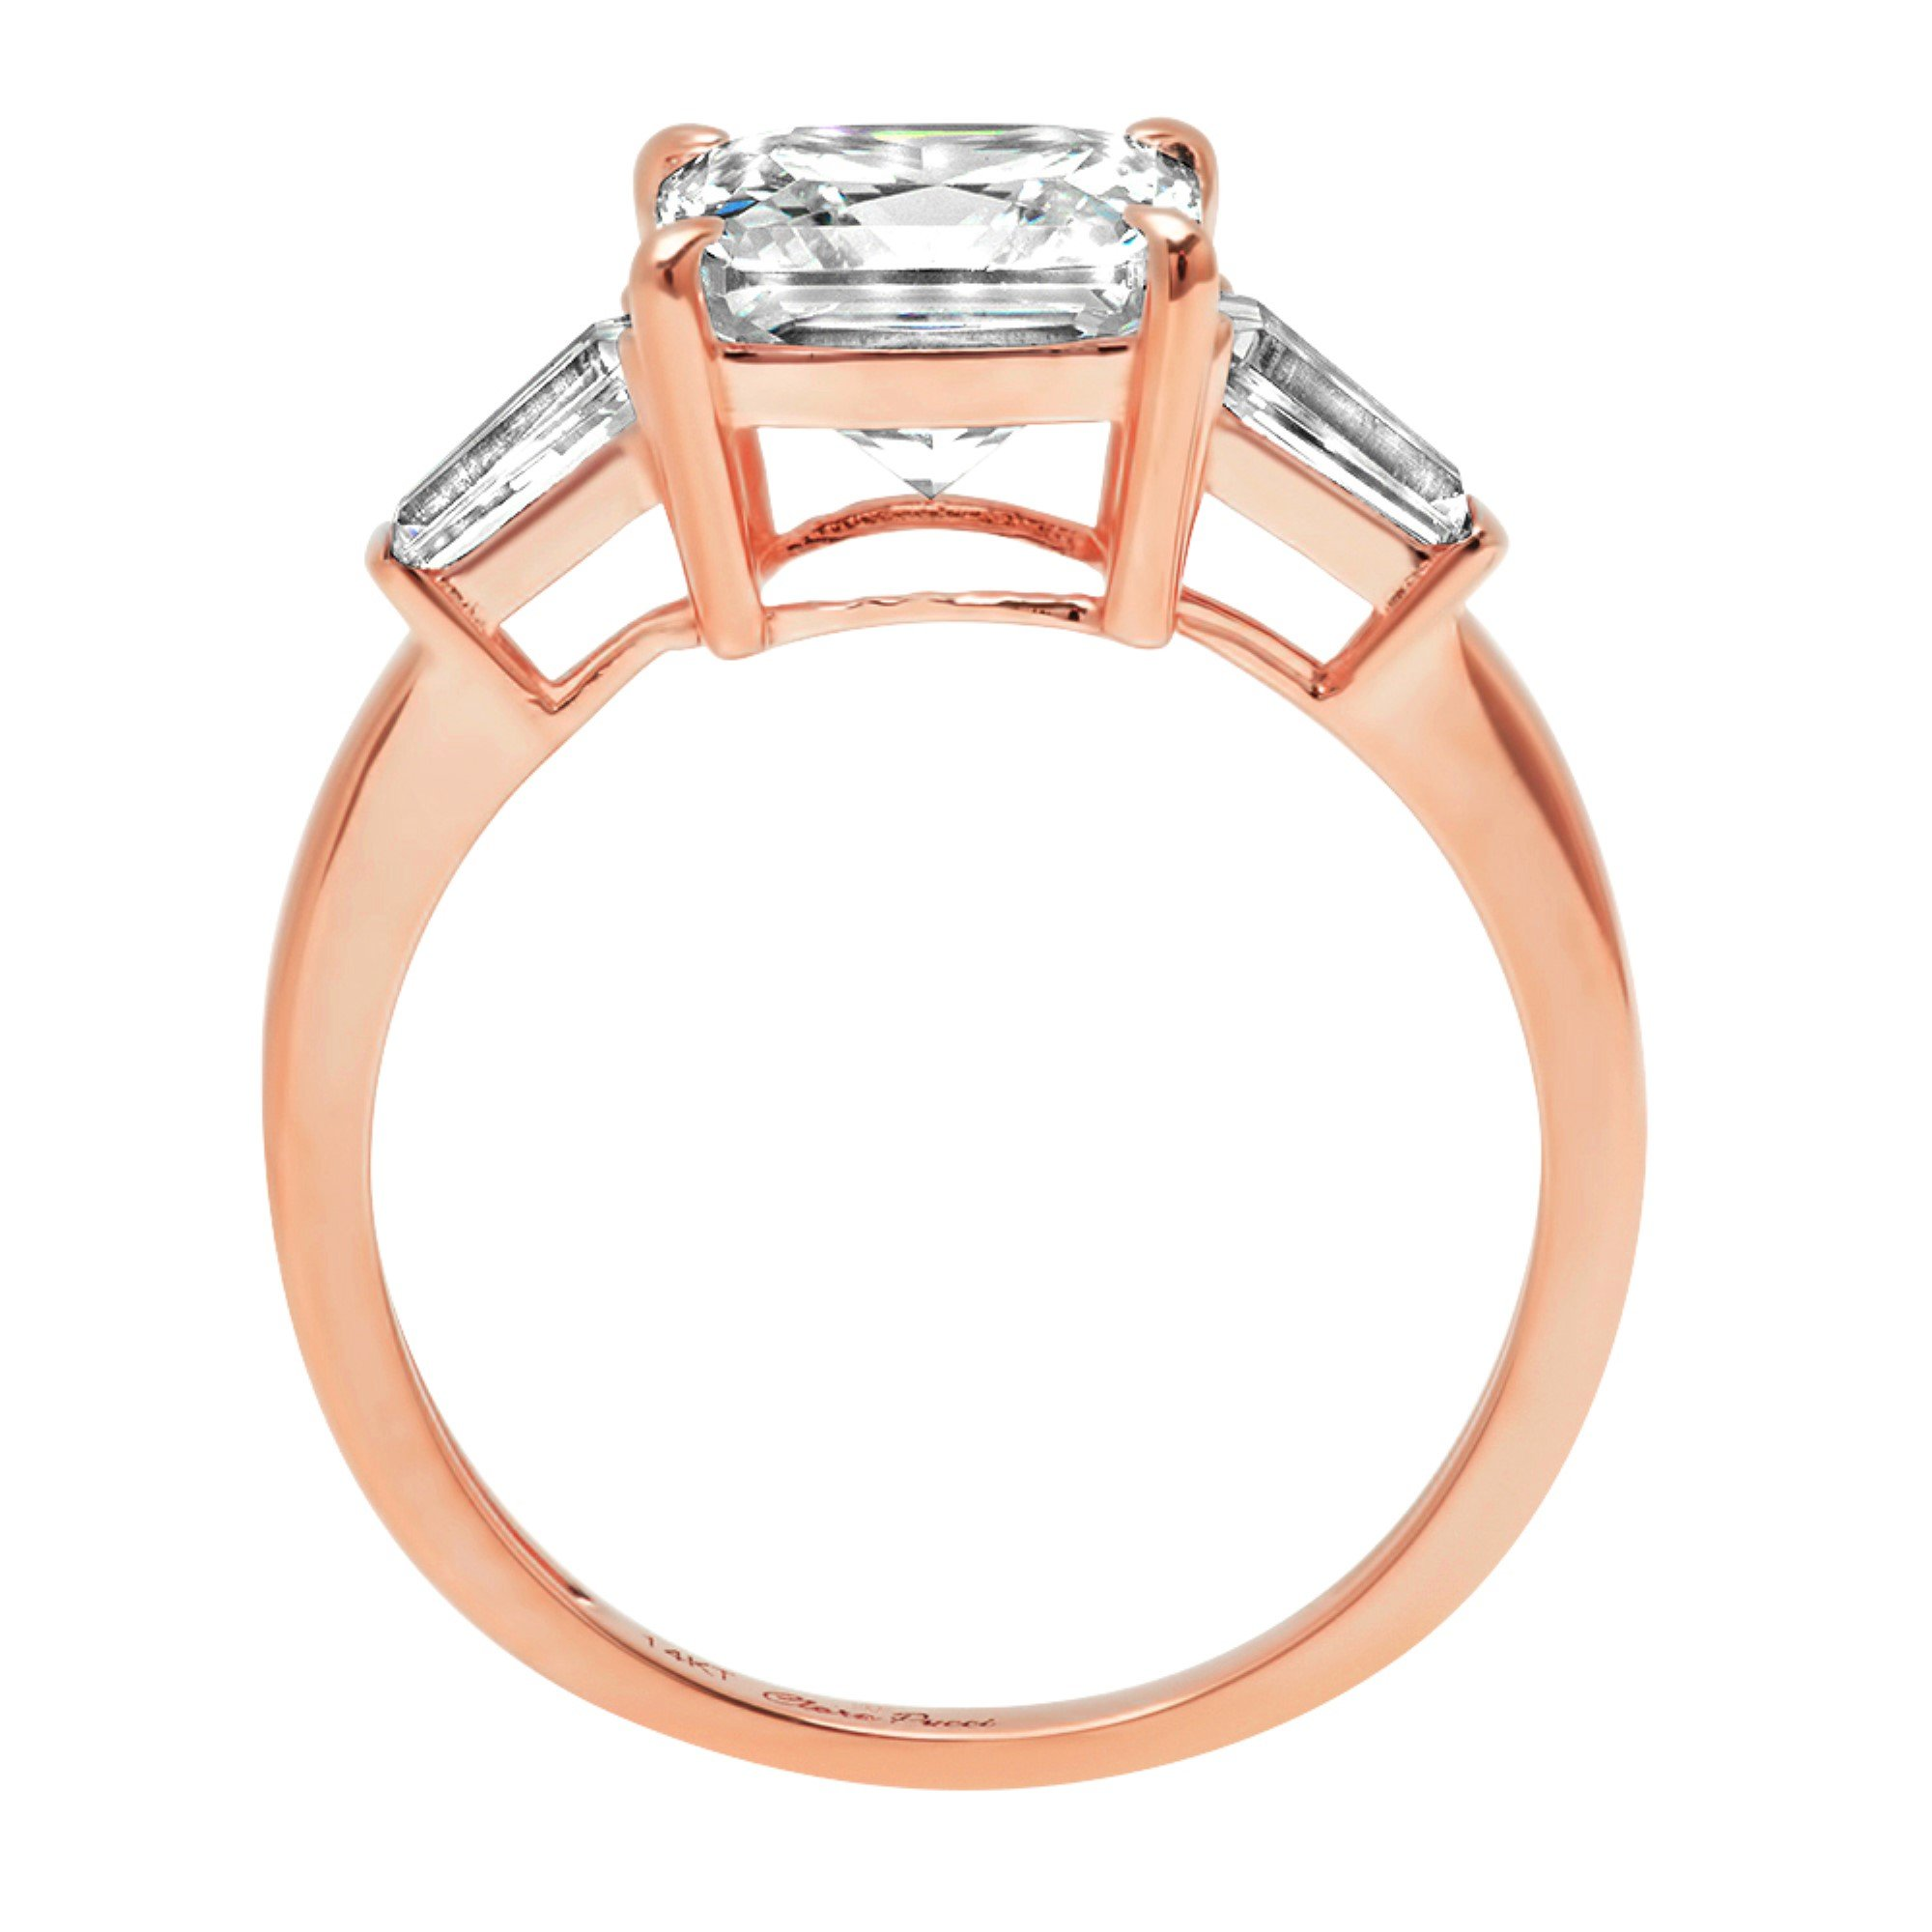 Asscher Baguette 3-Stone Classic Solitaire Designer Wedding Bridal Statement Anniversary Engagement Promise Ring 14k Rose Gold, 3.7ct, 7.5 by Clara Pucci (Image #2)